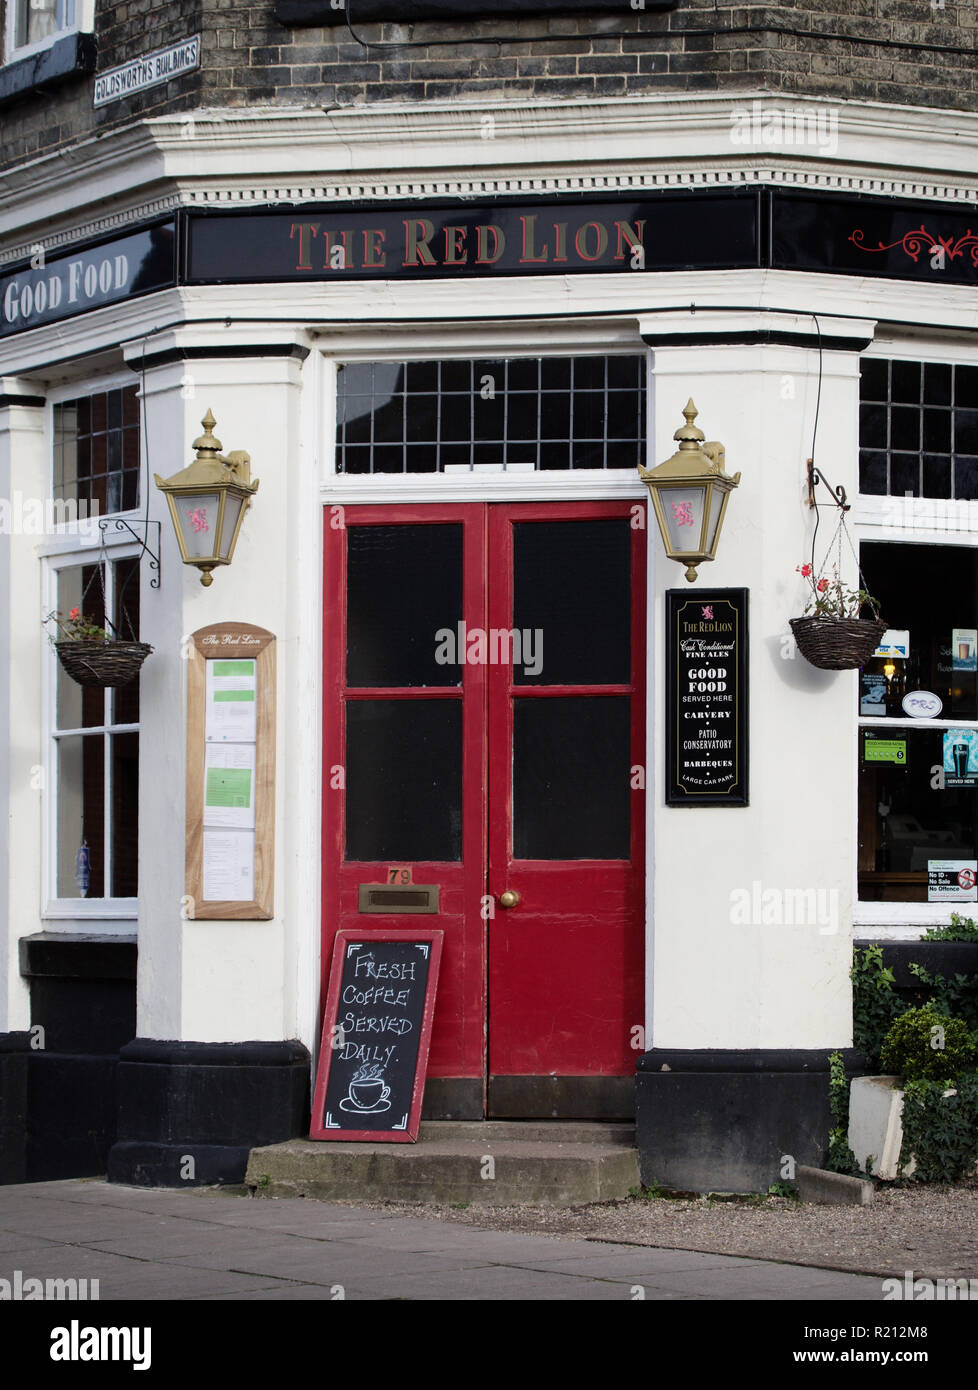 The Red Lion Pub Norwich - Stock Image